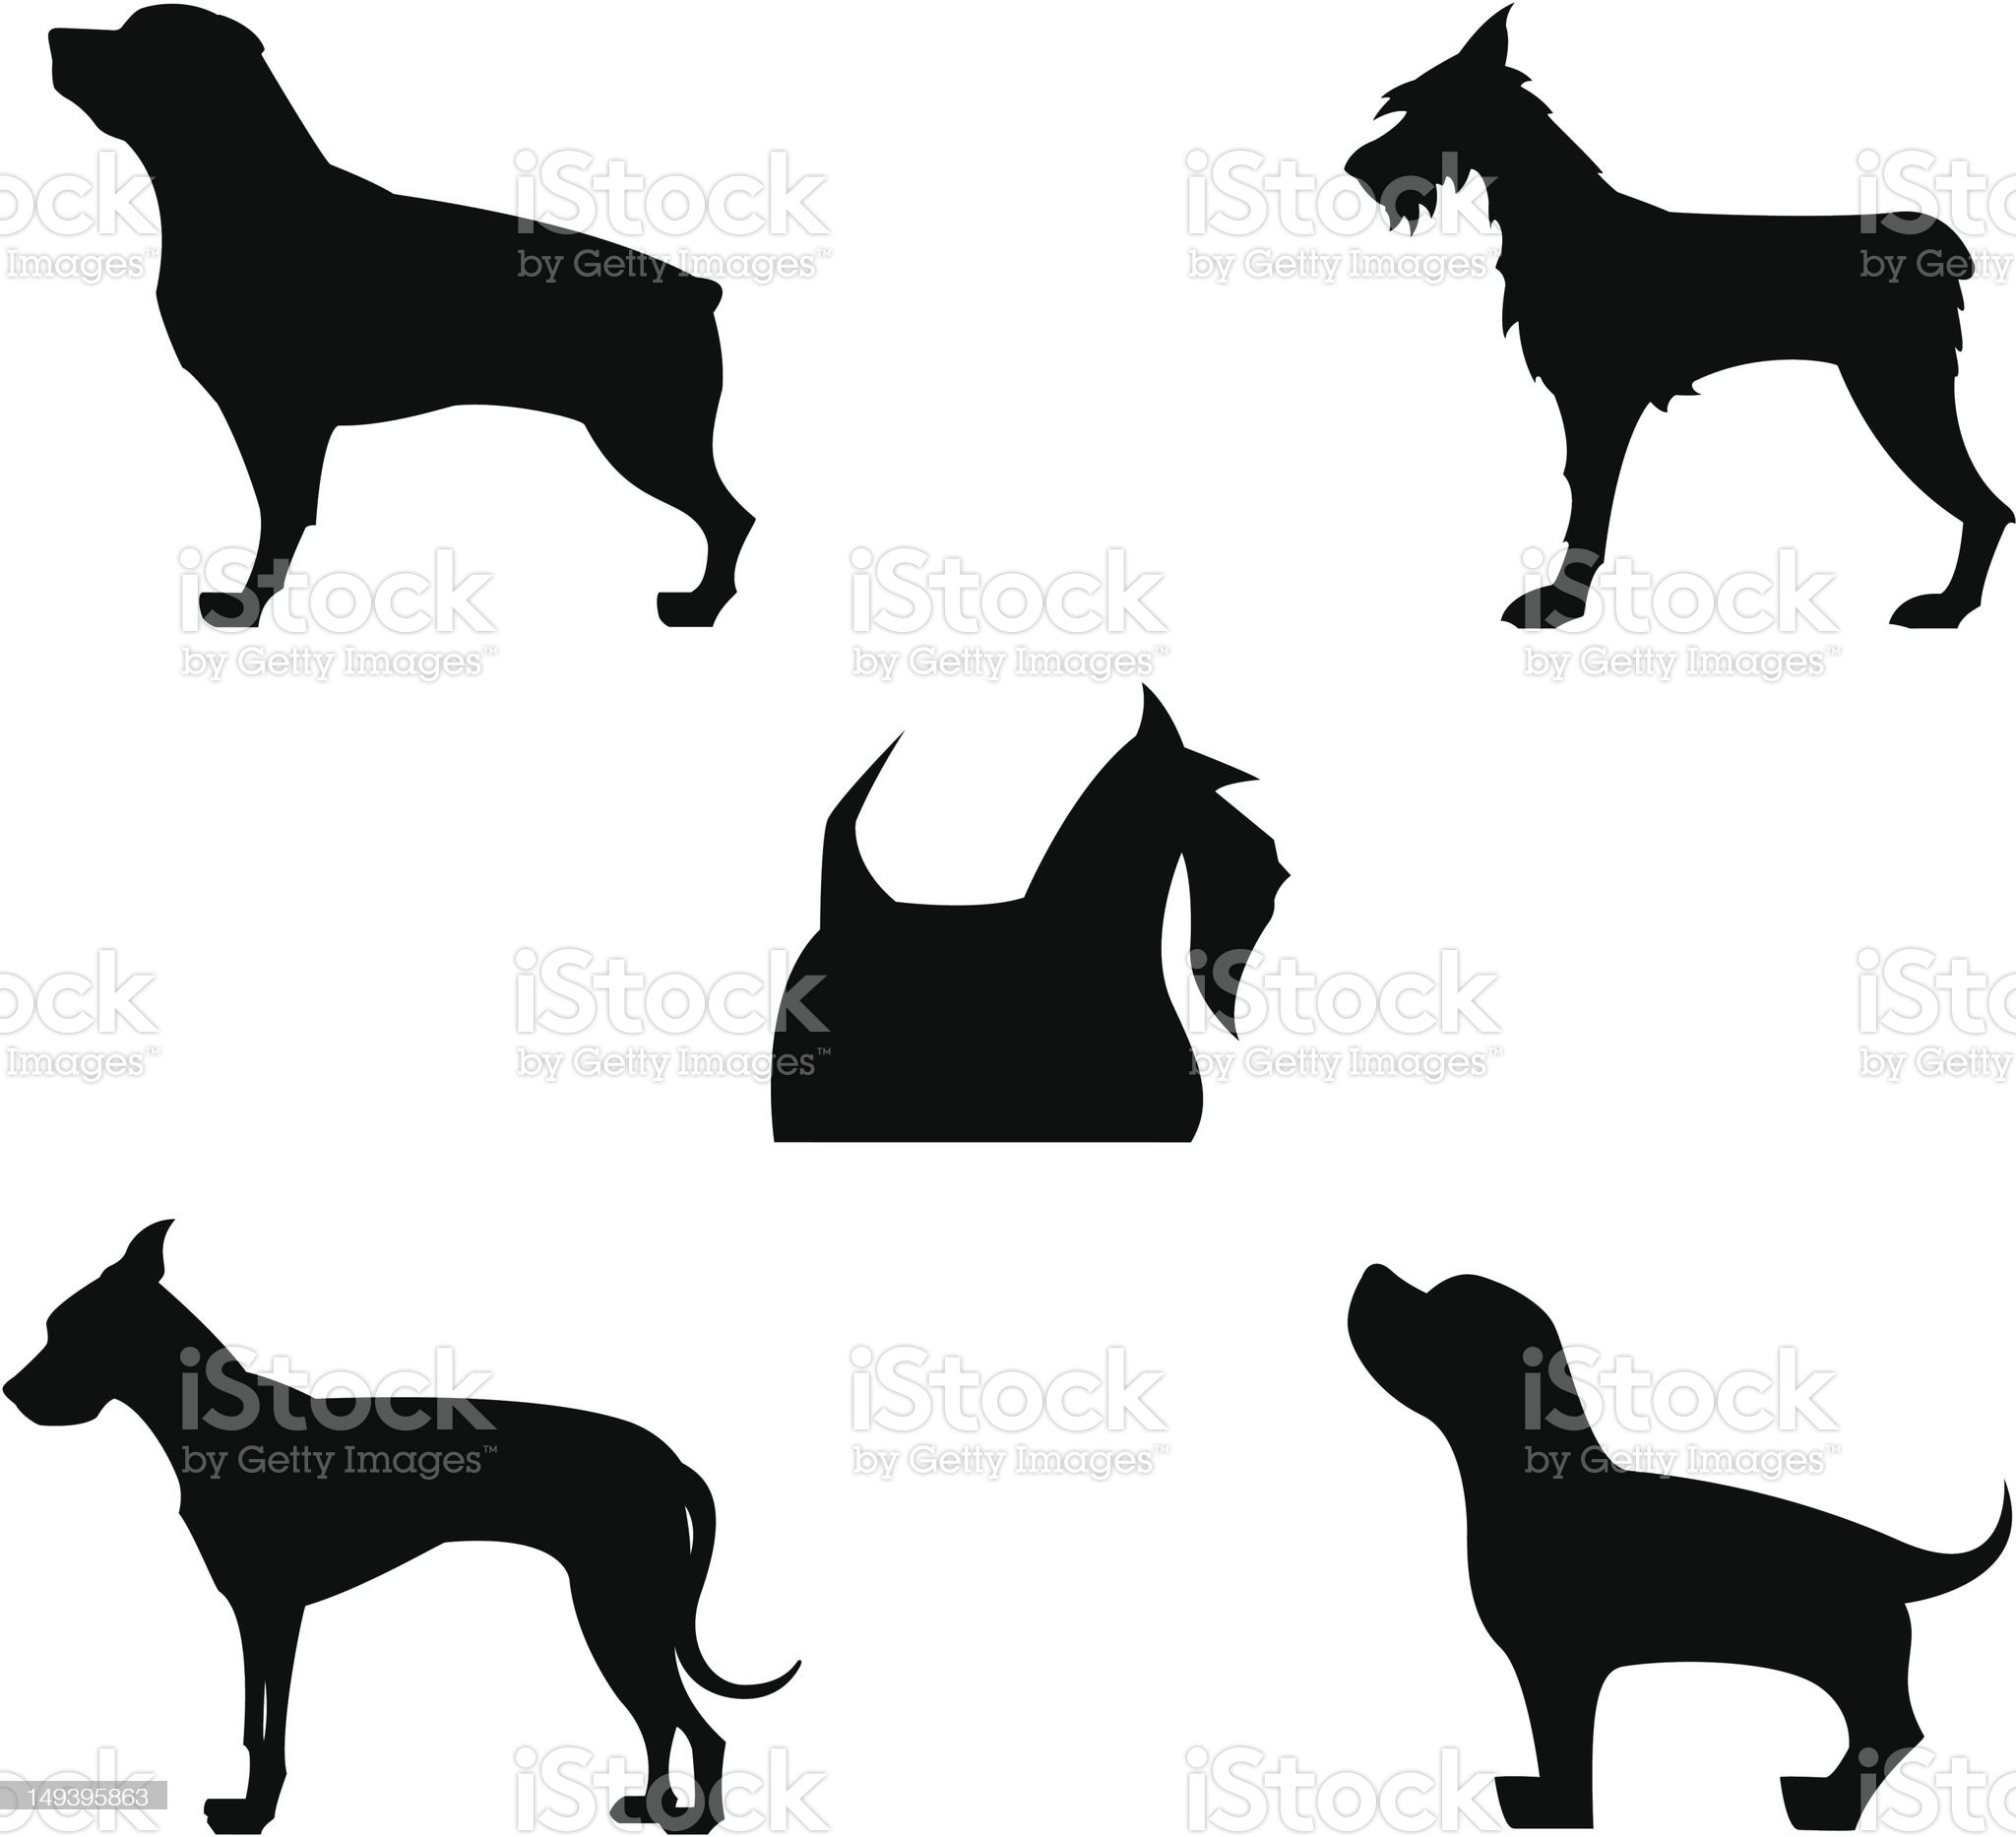 Some Dogs royalty-free stock vector art